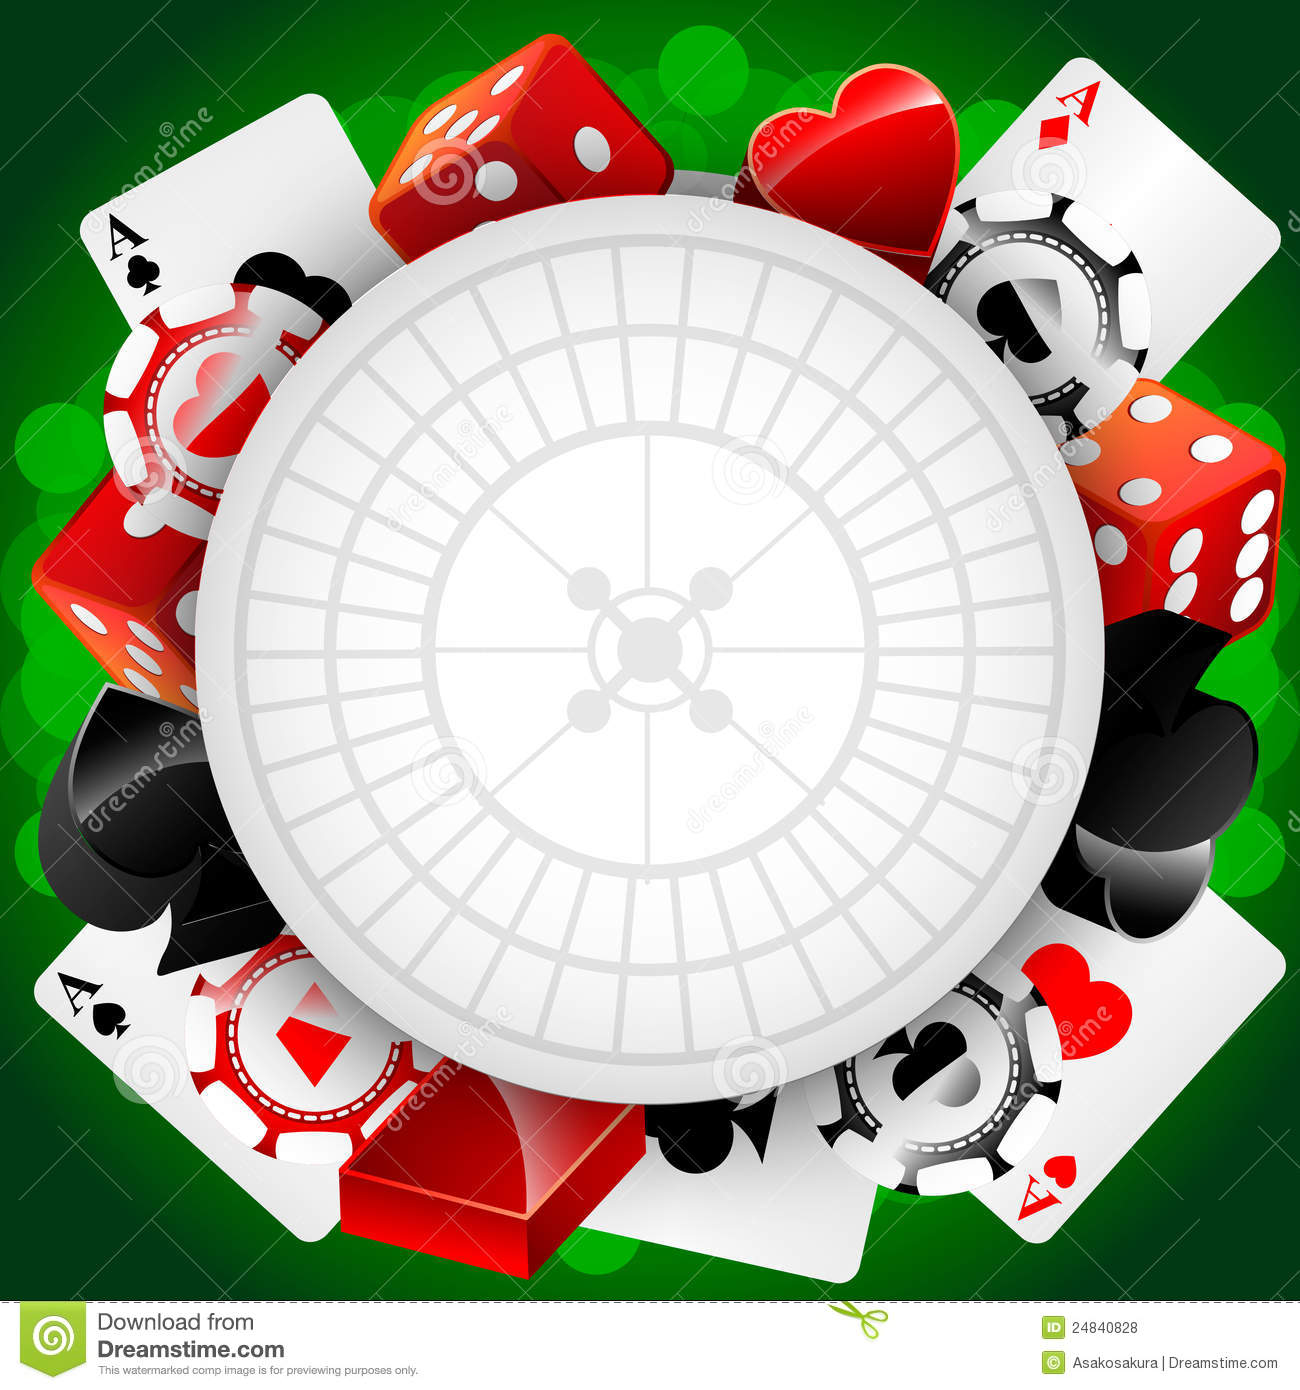 casino background vectors - photo #6